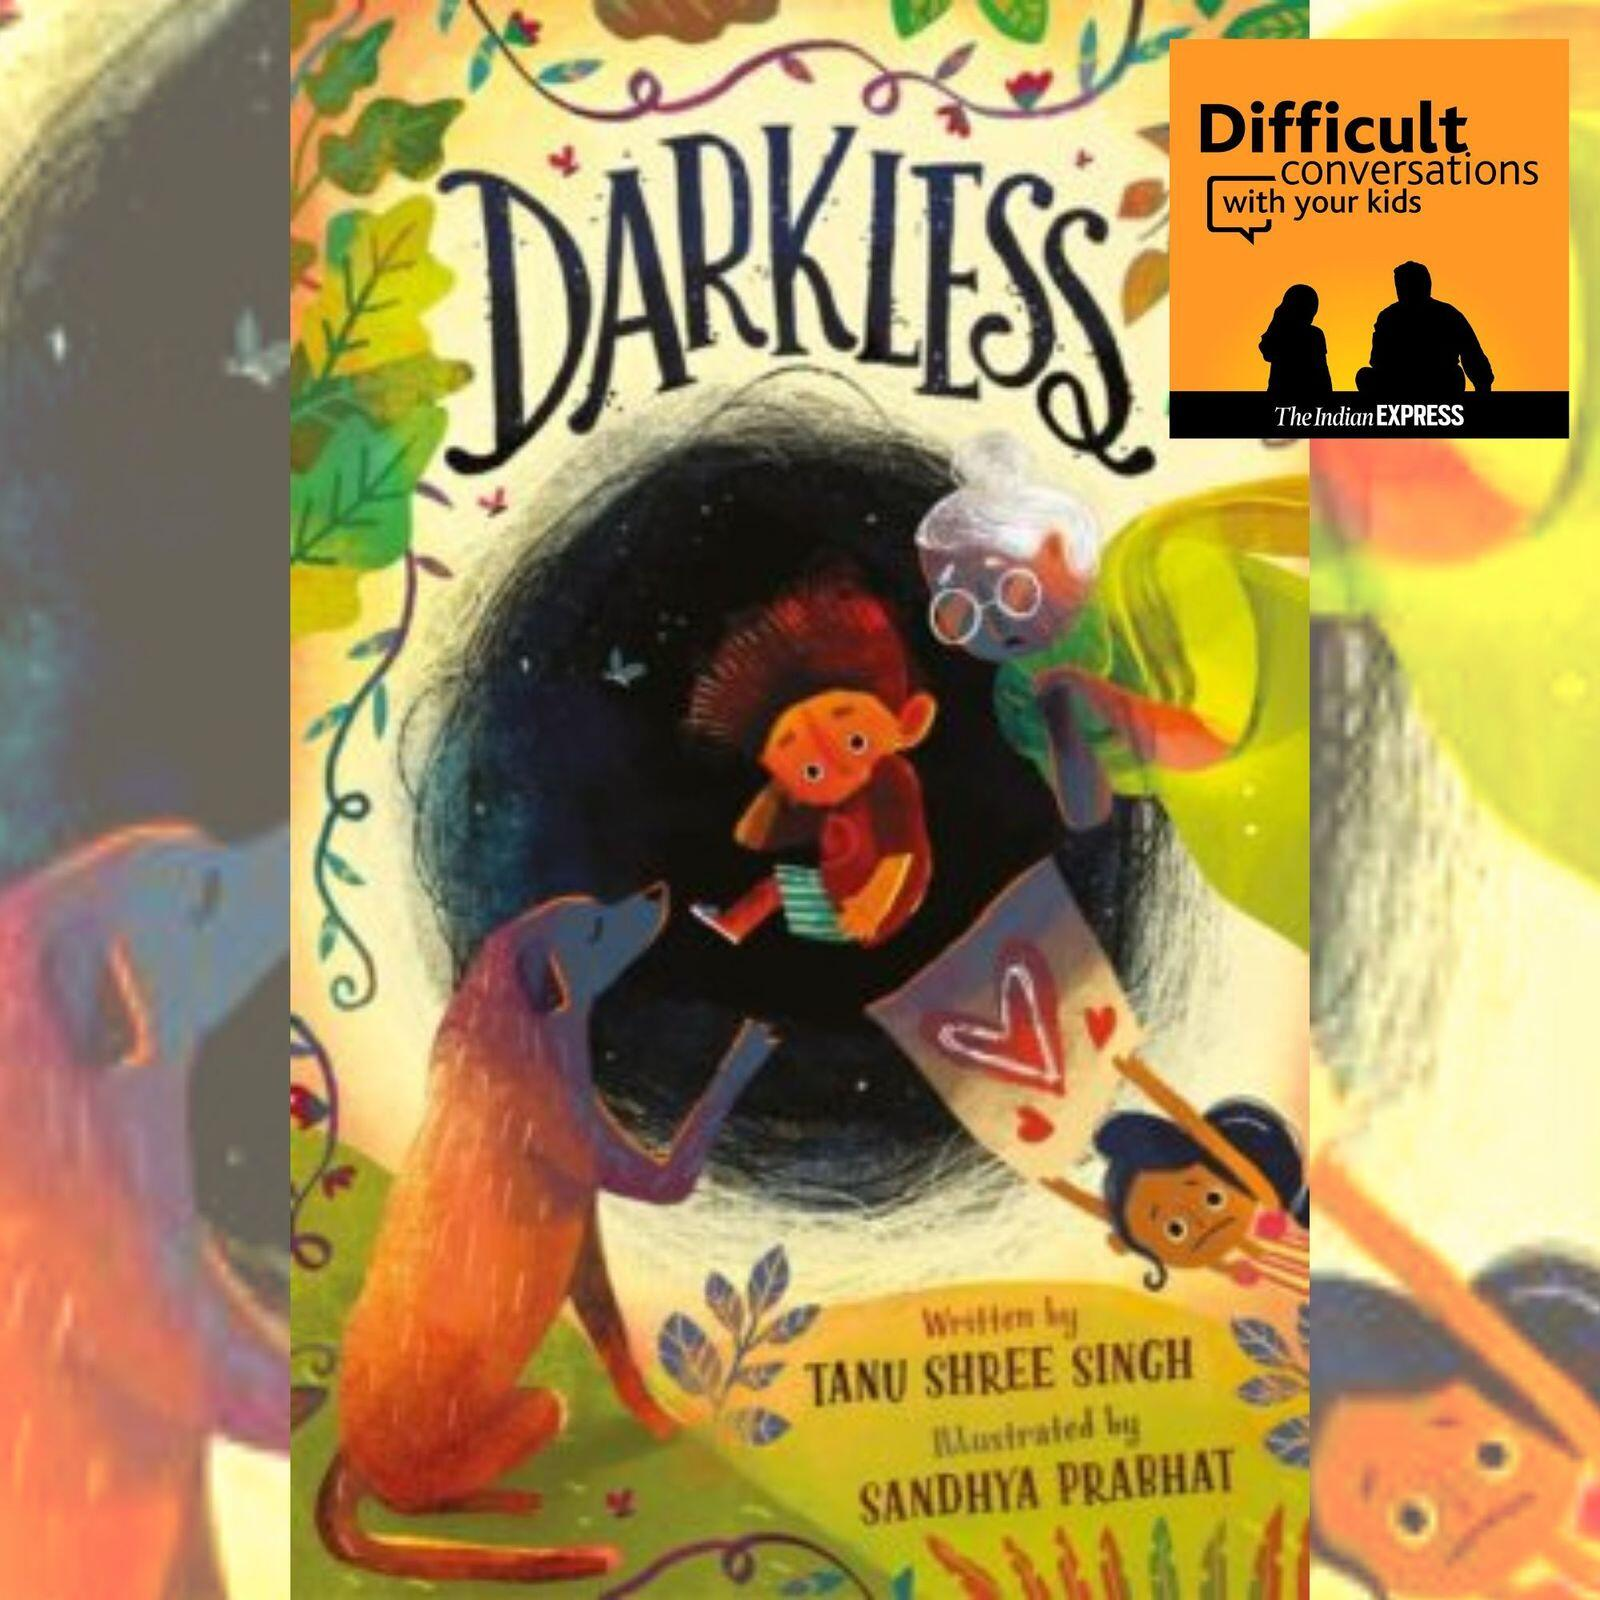 31: Kids' books on Cancer and other challenging themes